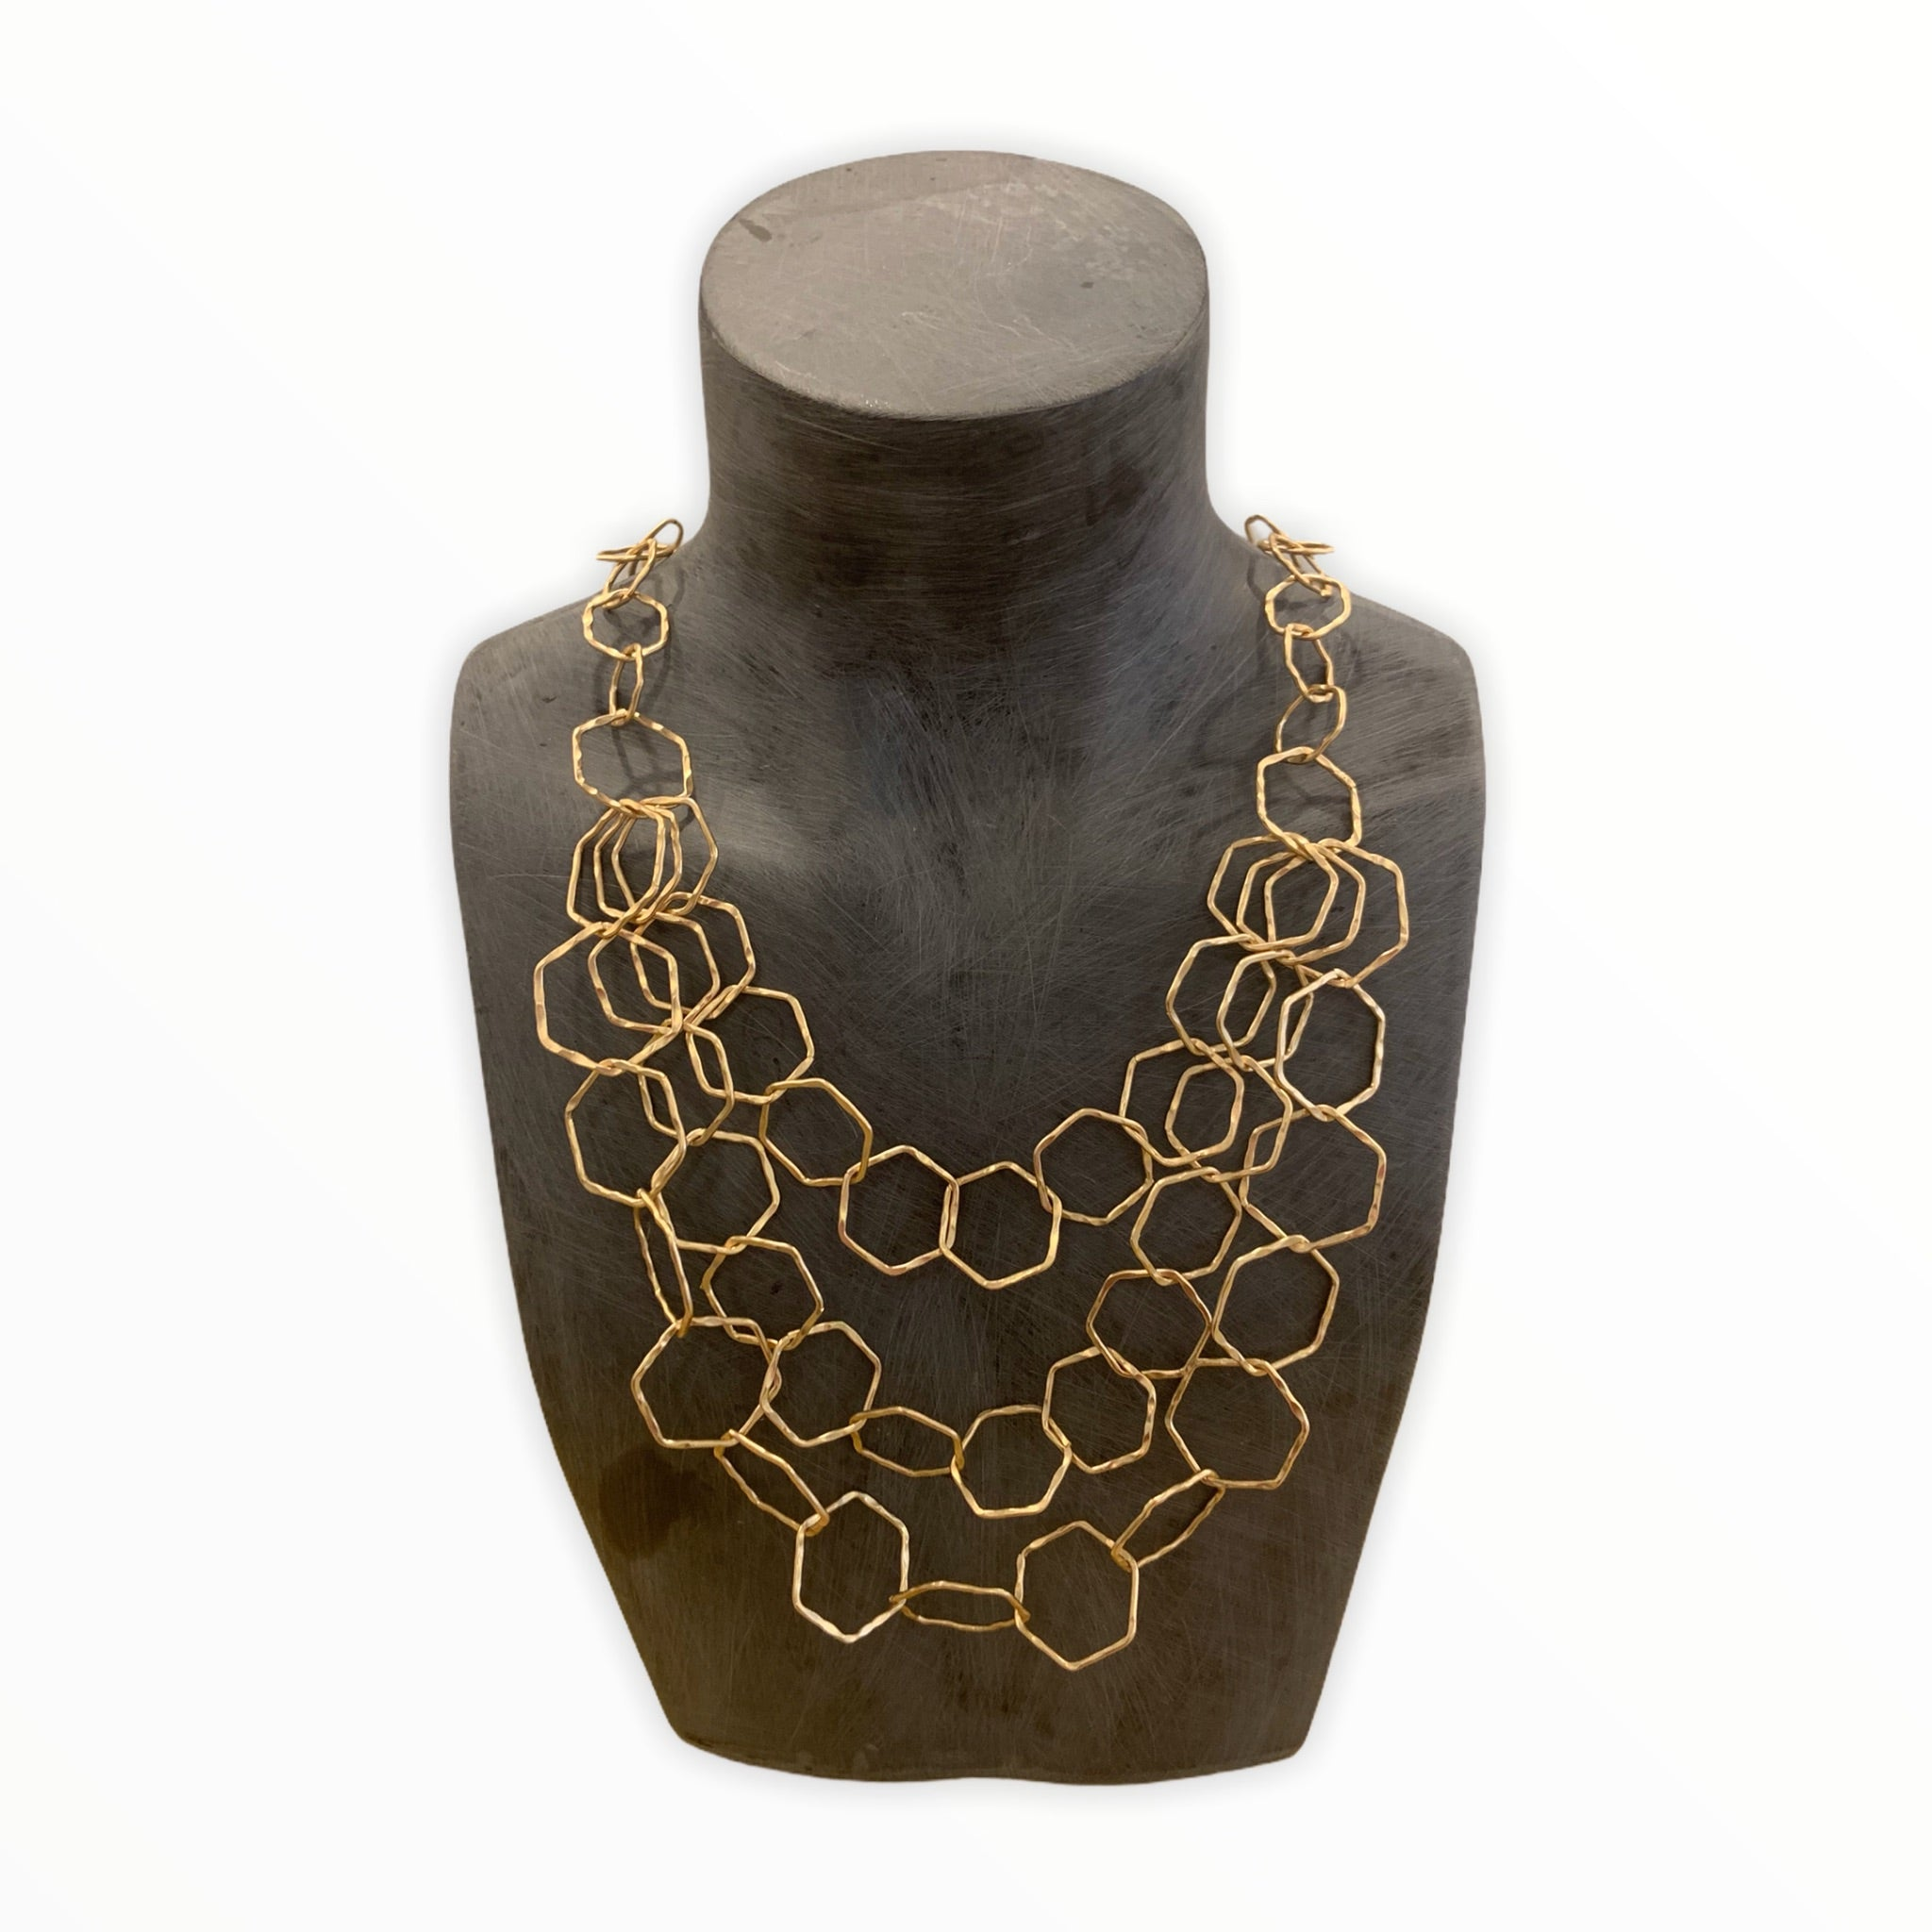 Tons of Hexagons Necklace